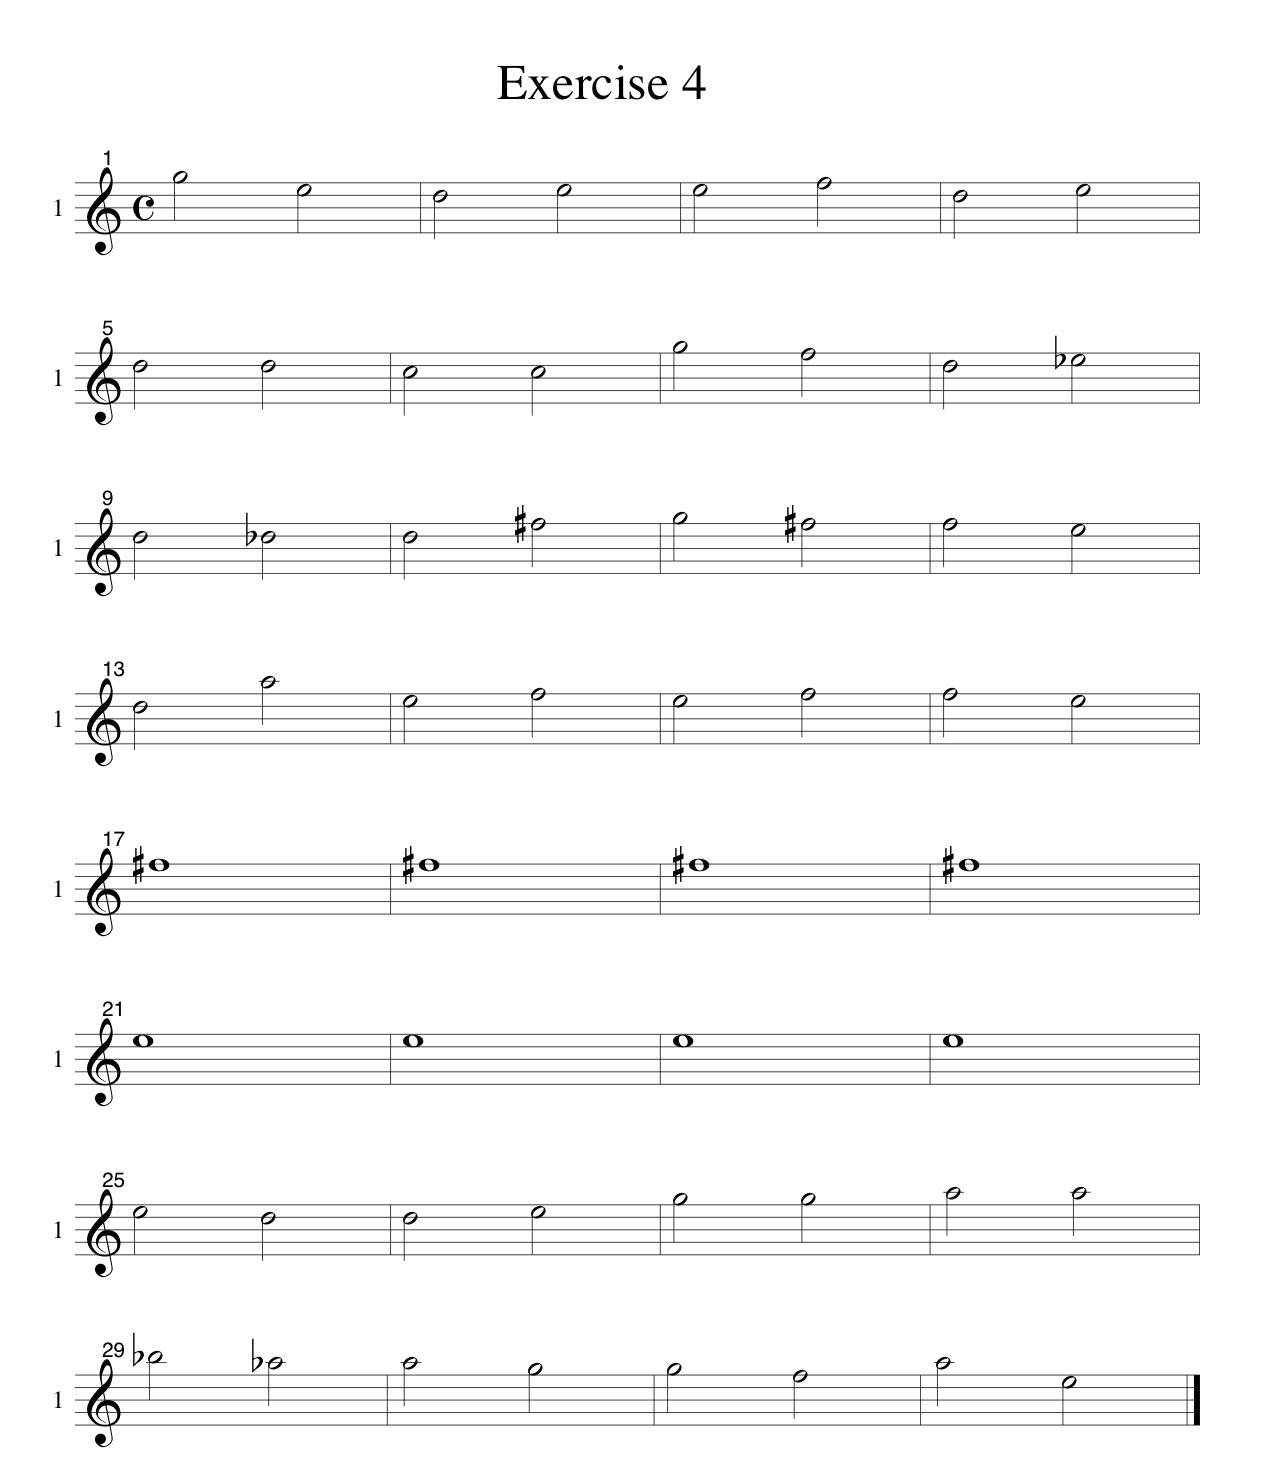 Soprano-Voice-Only-LINES-Choral-Ear-Training-Studies SATB-by Bruce Arnold for Muse Eek Publishing Company